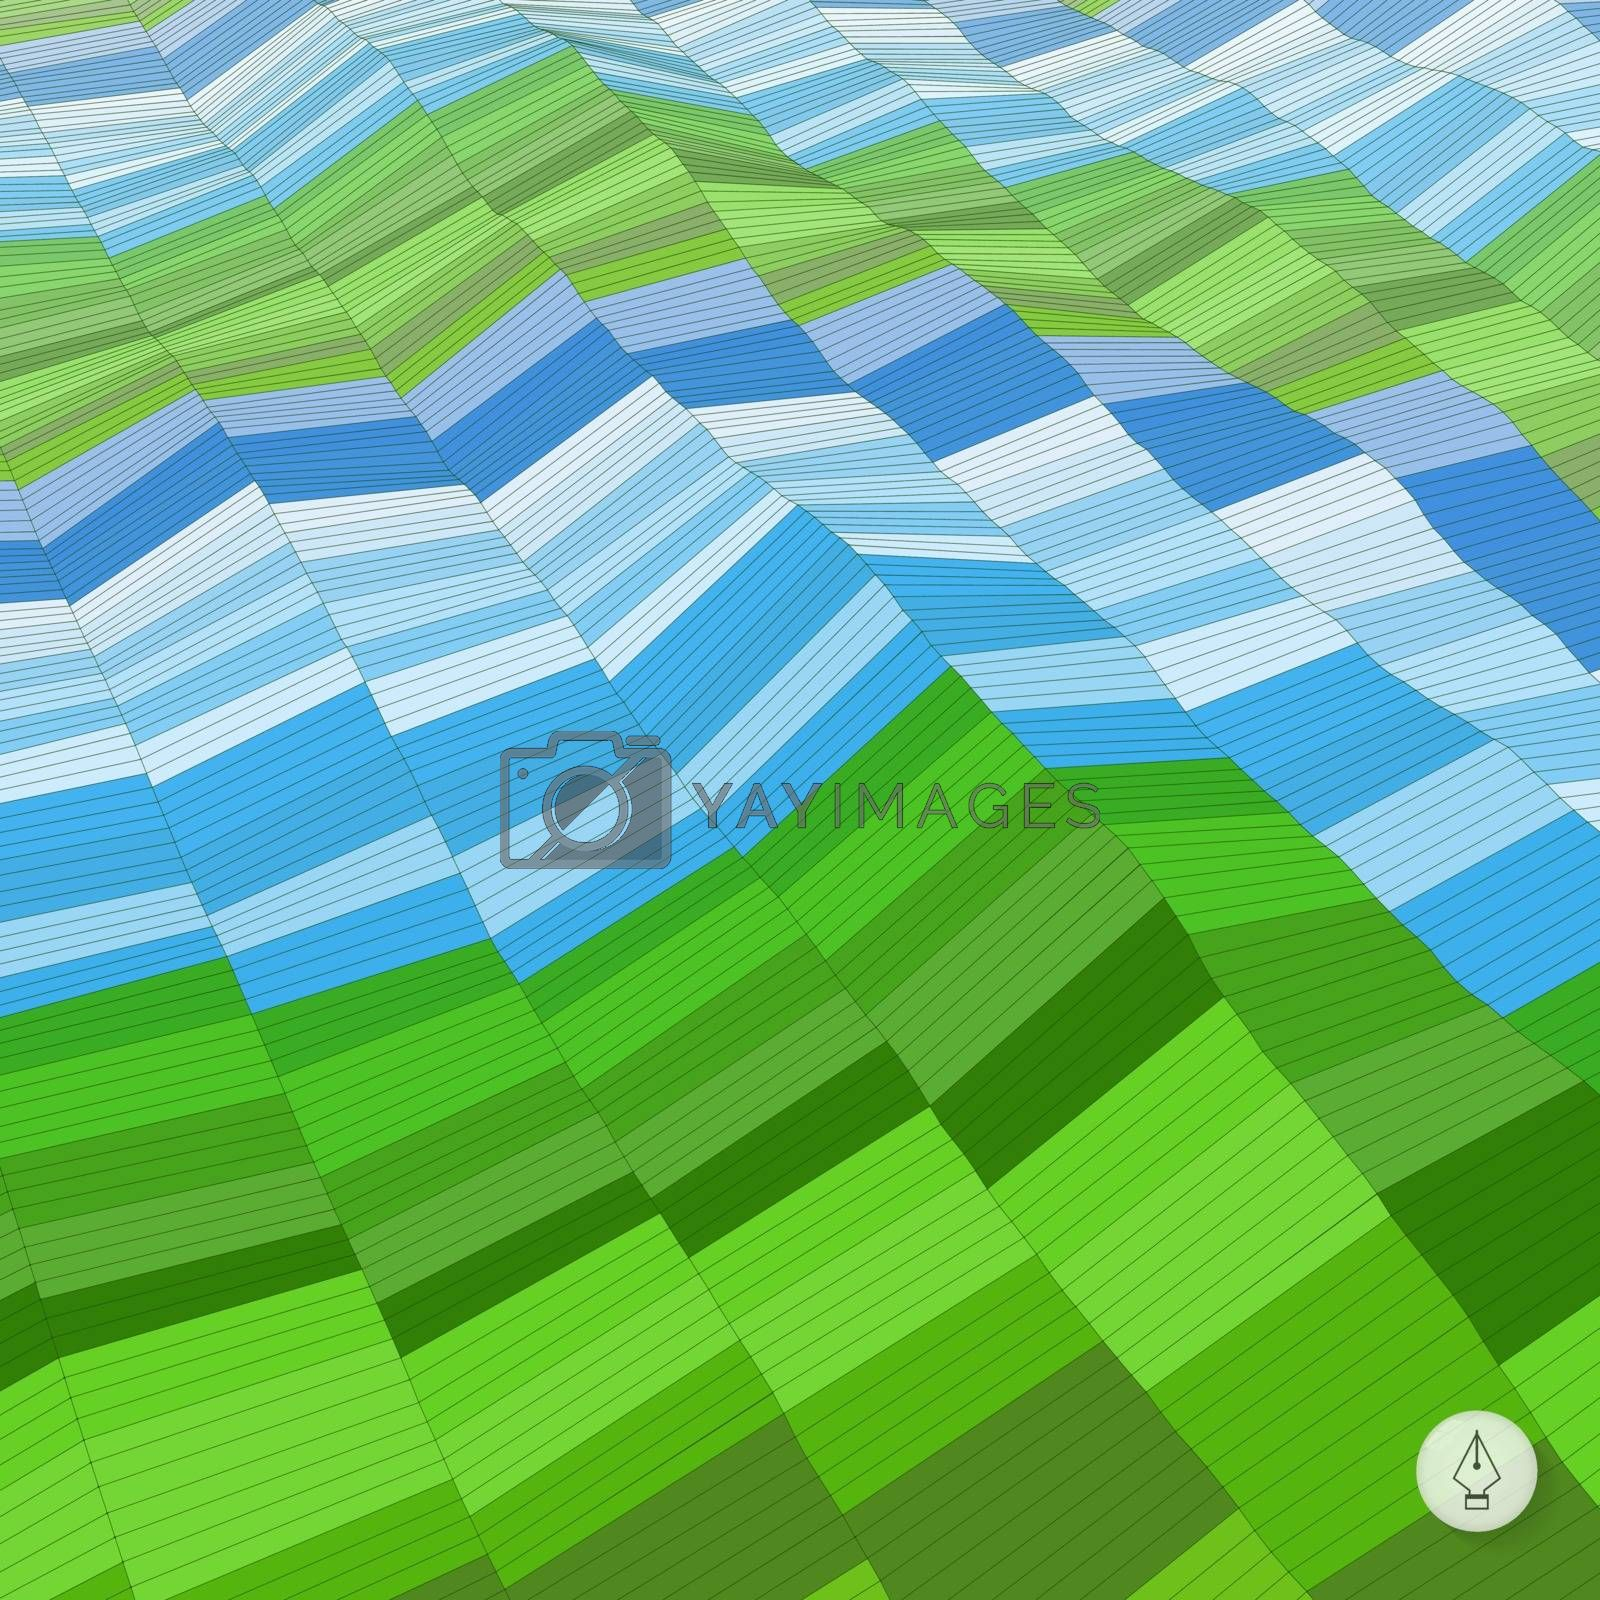 Abstract background. Mosaic. Vector illustration. Can be used for wallpaper, web page background, web banners.